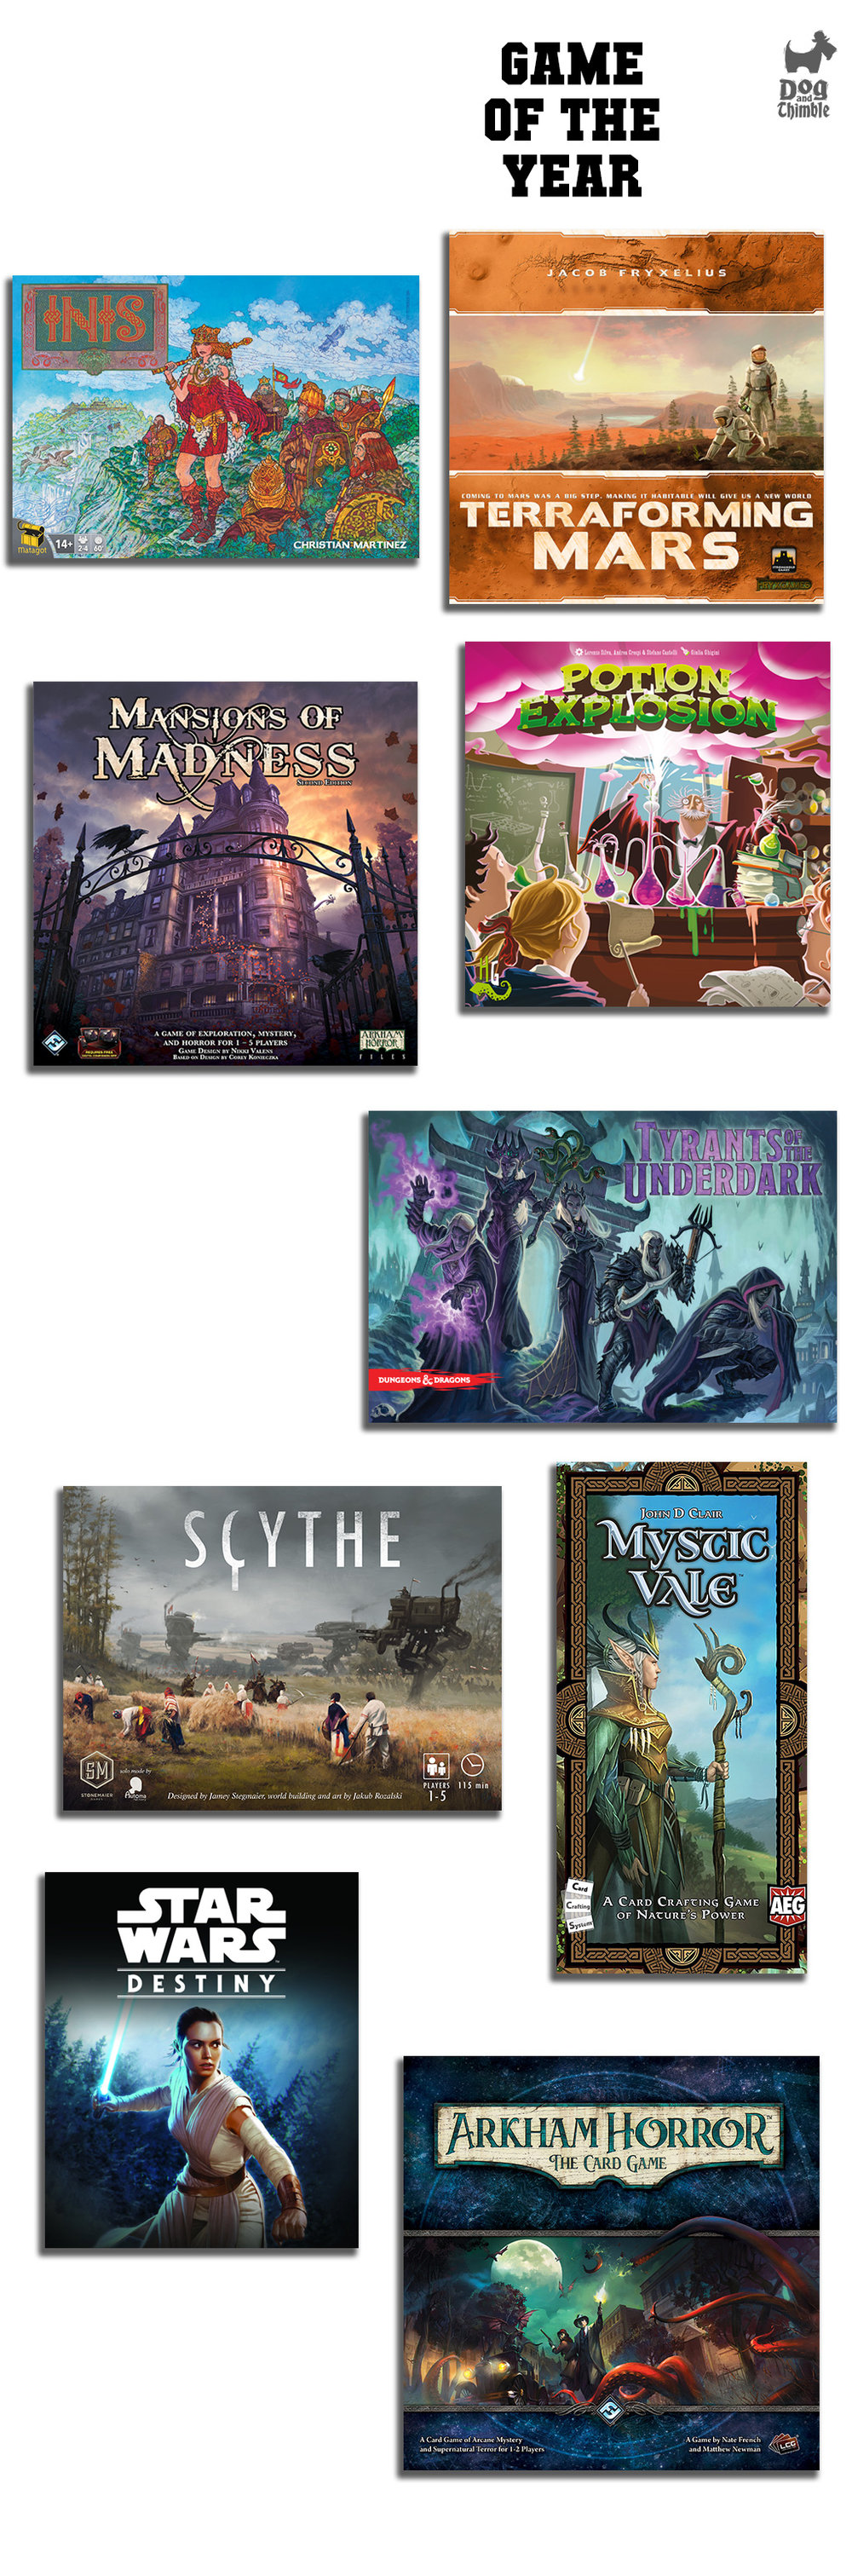 Best Board Game of 2016 Arkham Horror: The Card Game Grifters Inis Mansions of Madness Second Edition Mystic Vale Potion Explosion Scythe Star Wars: Destiny Terraforming Mars Tyrants of the Underdark